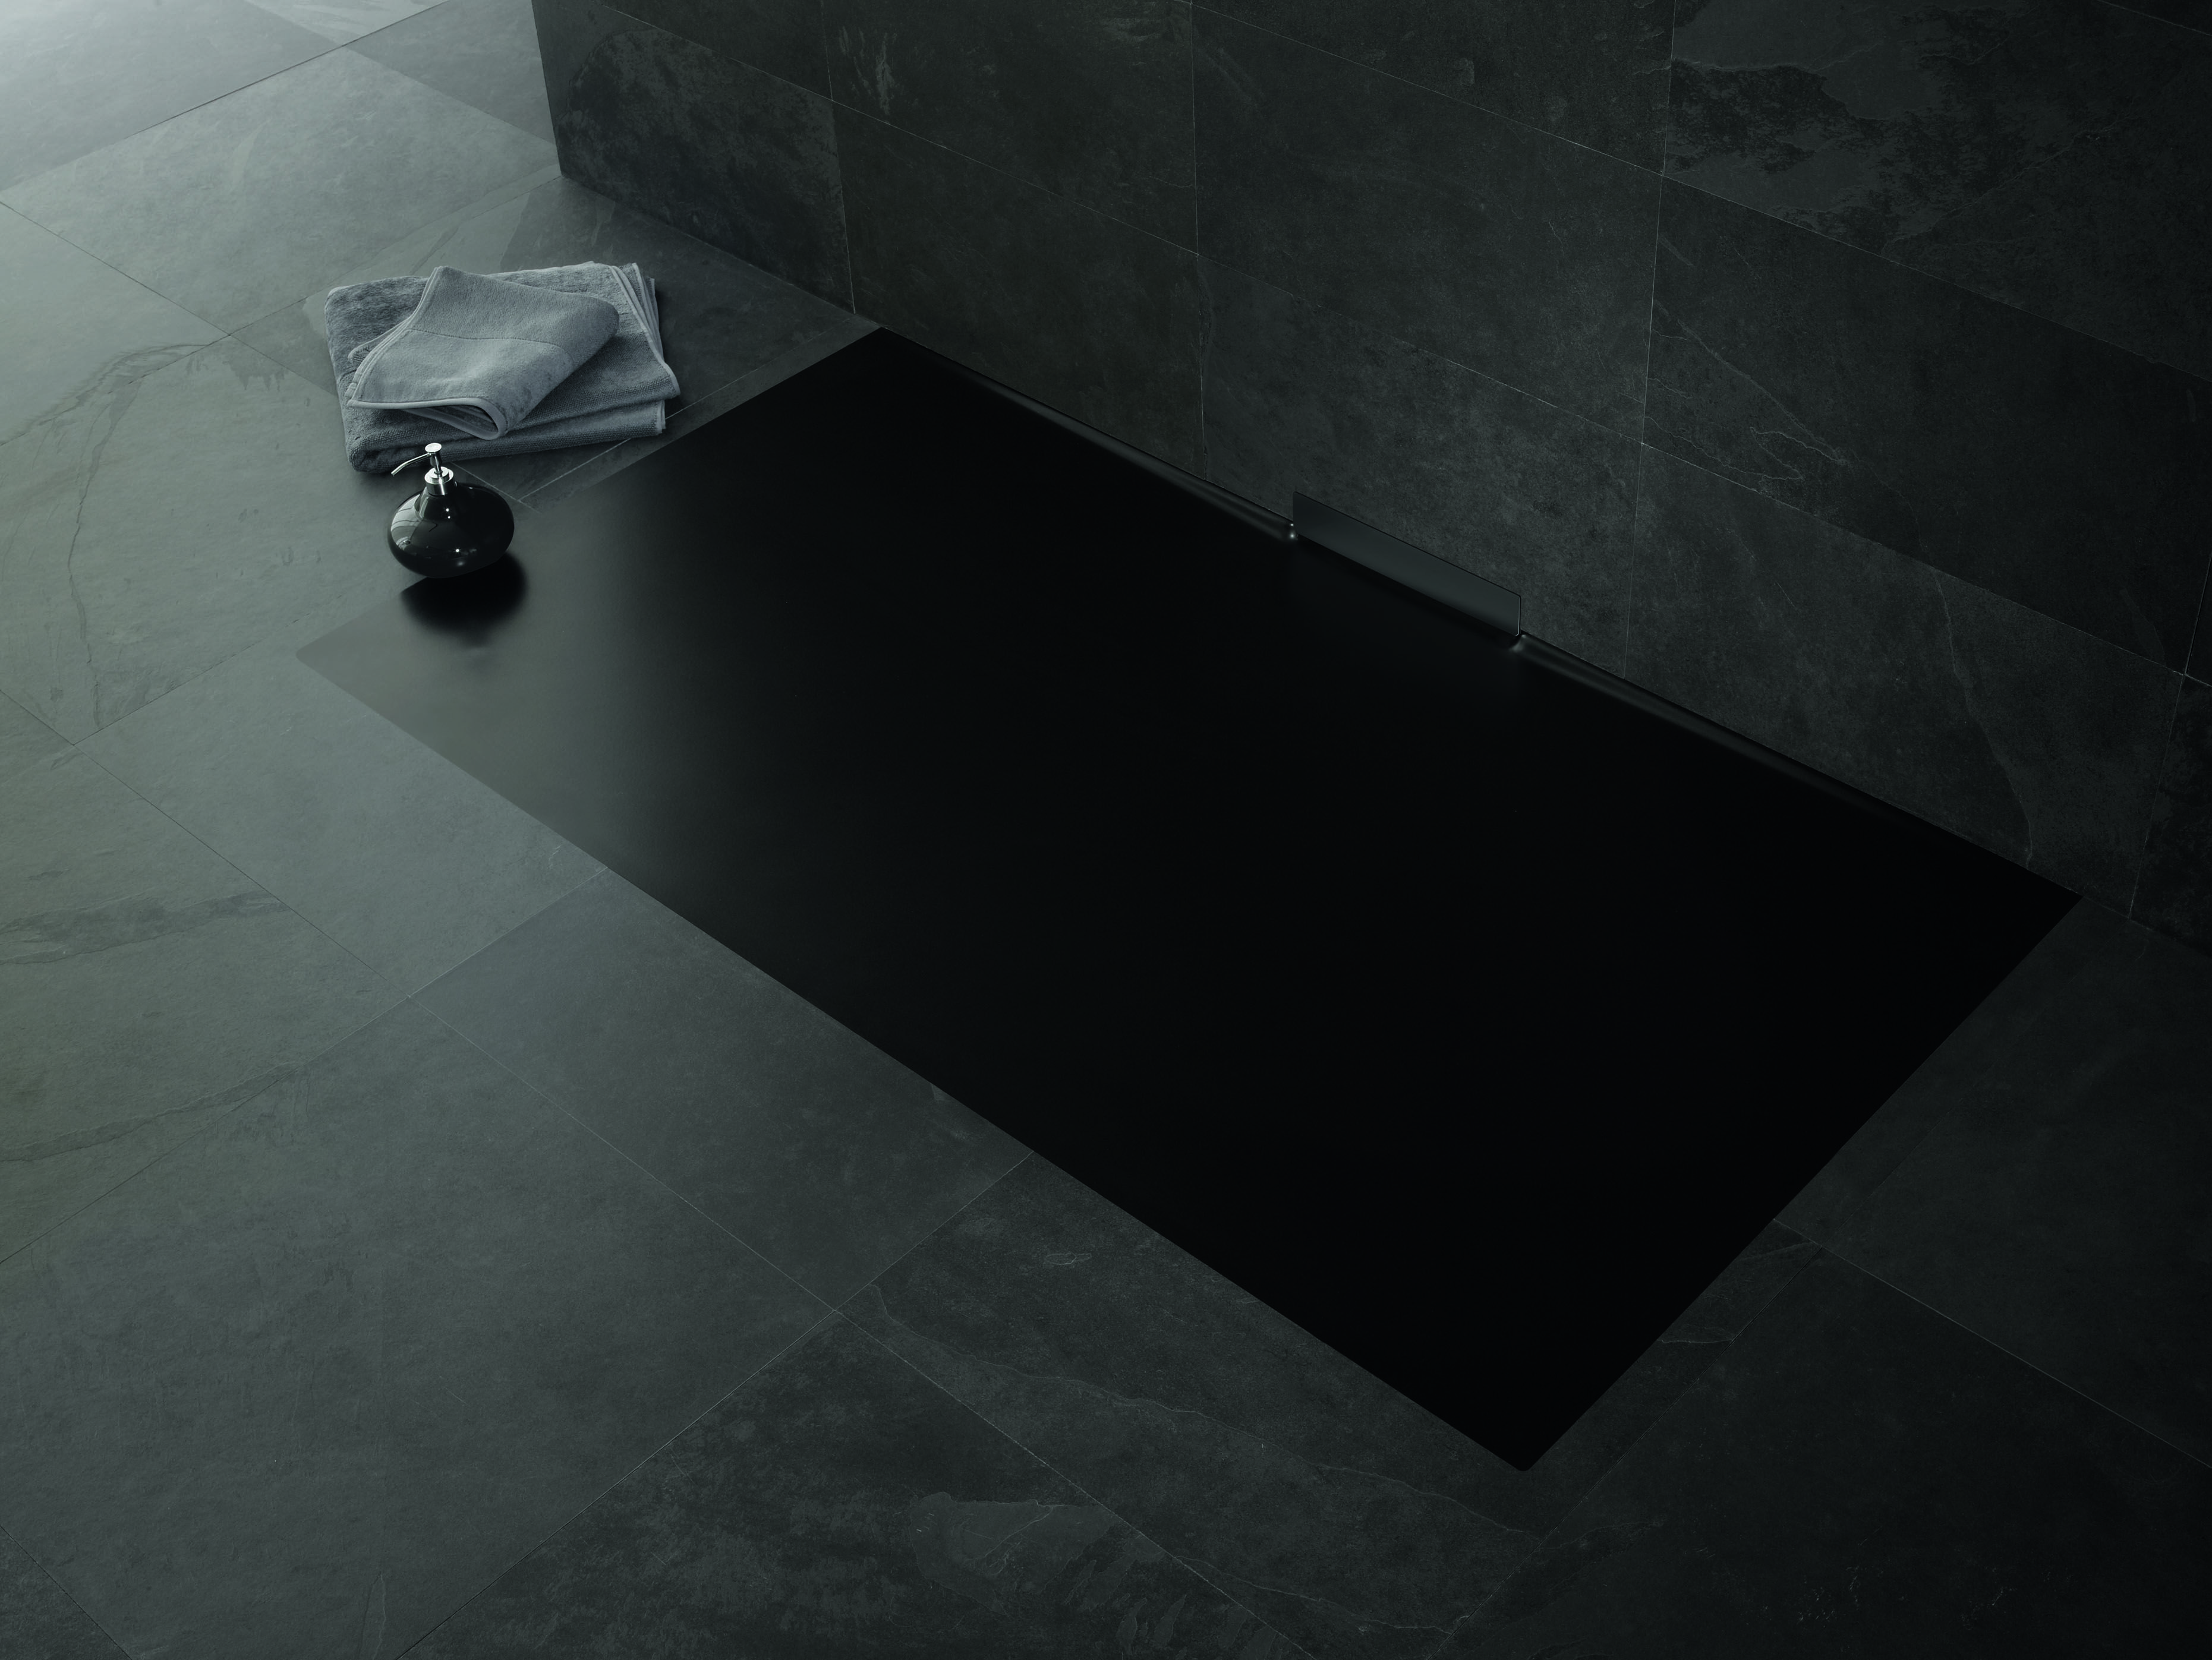 With 13 Different Dimensions The New Shower Surface Xetis Blends